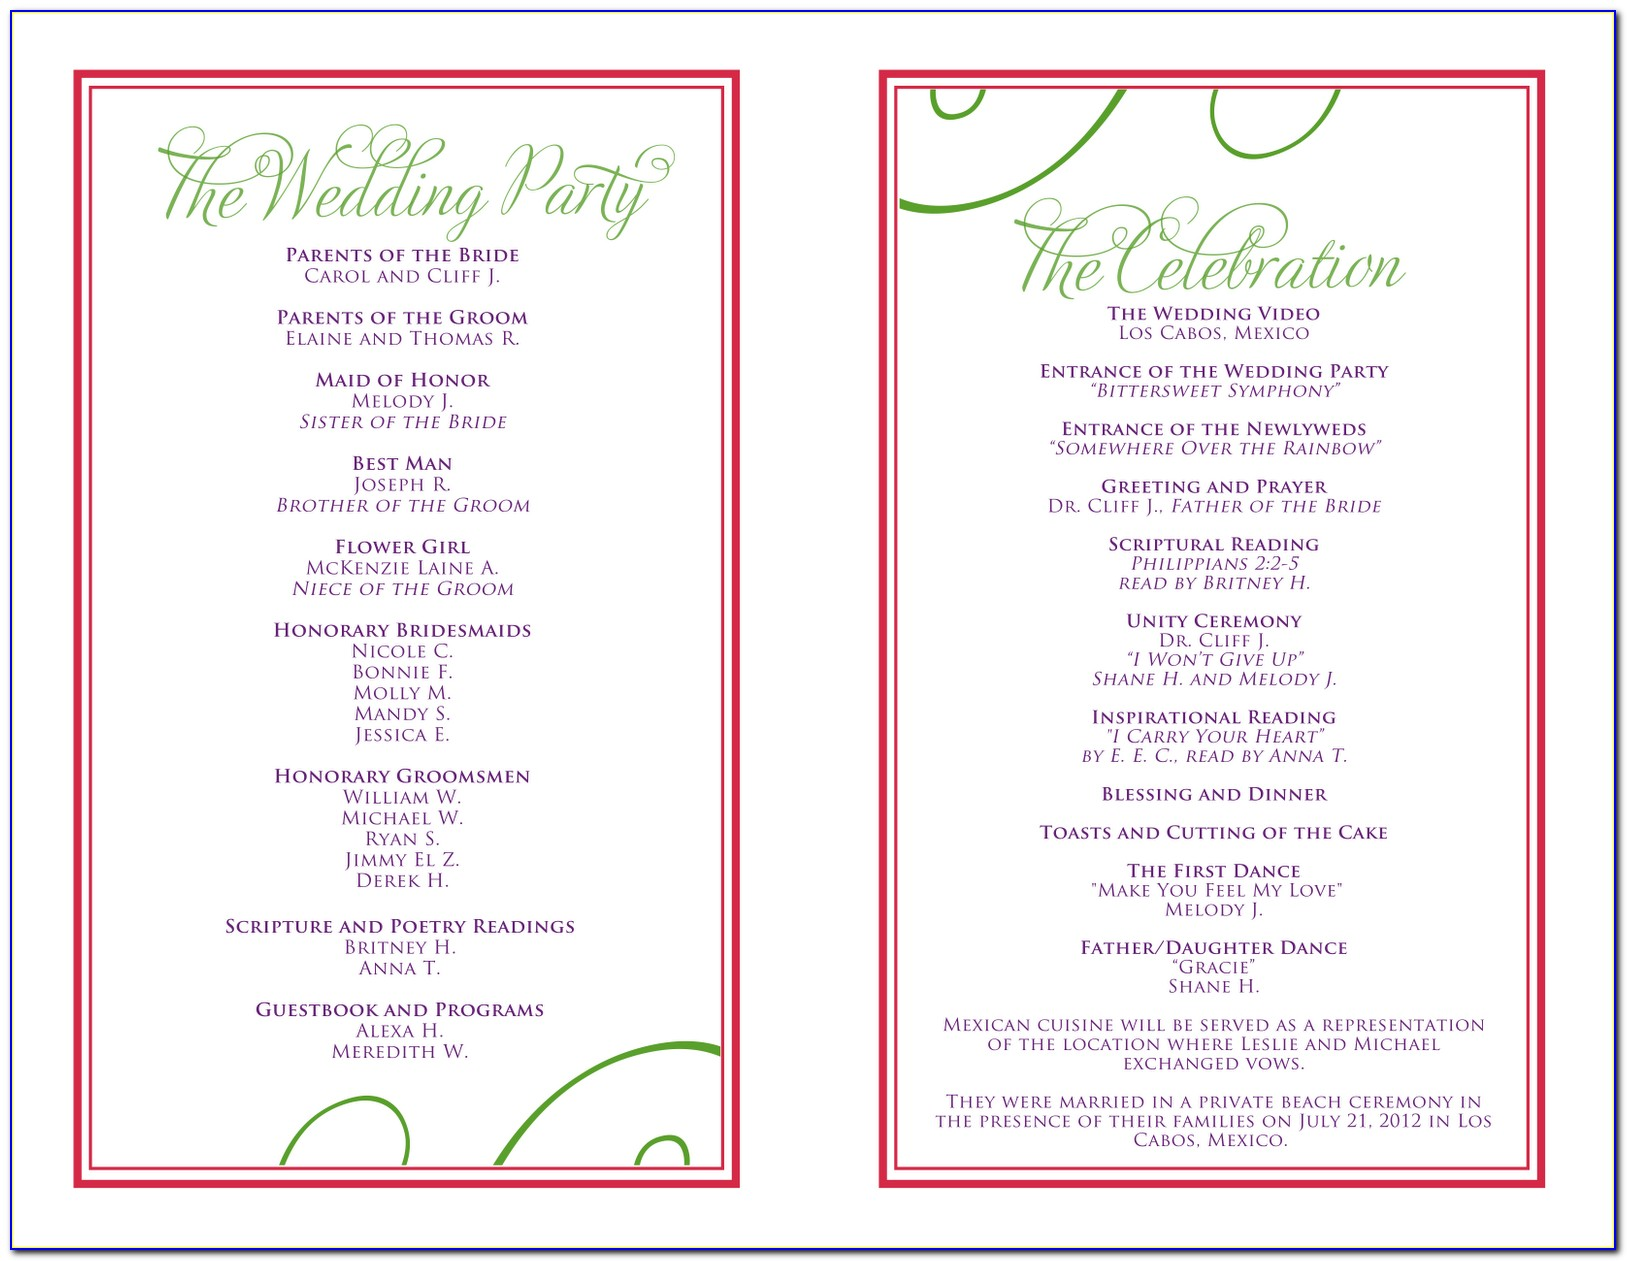 Free Downloadable Wedding Reception Program Template That Can Be Printed